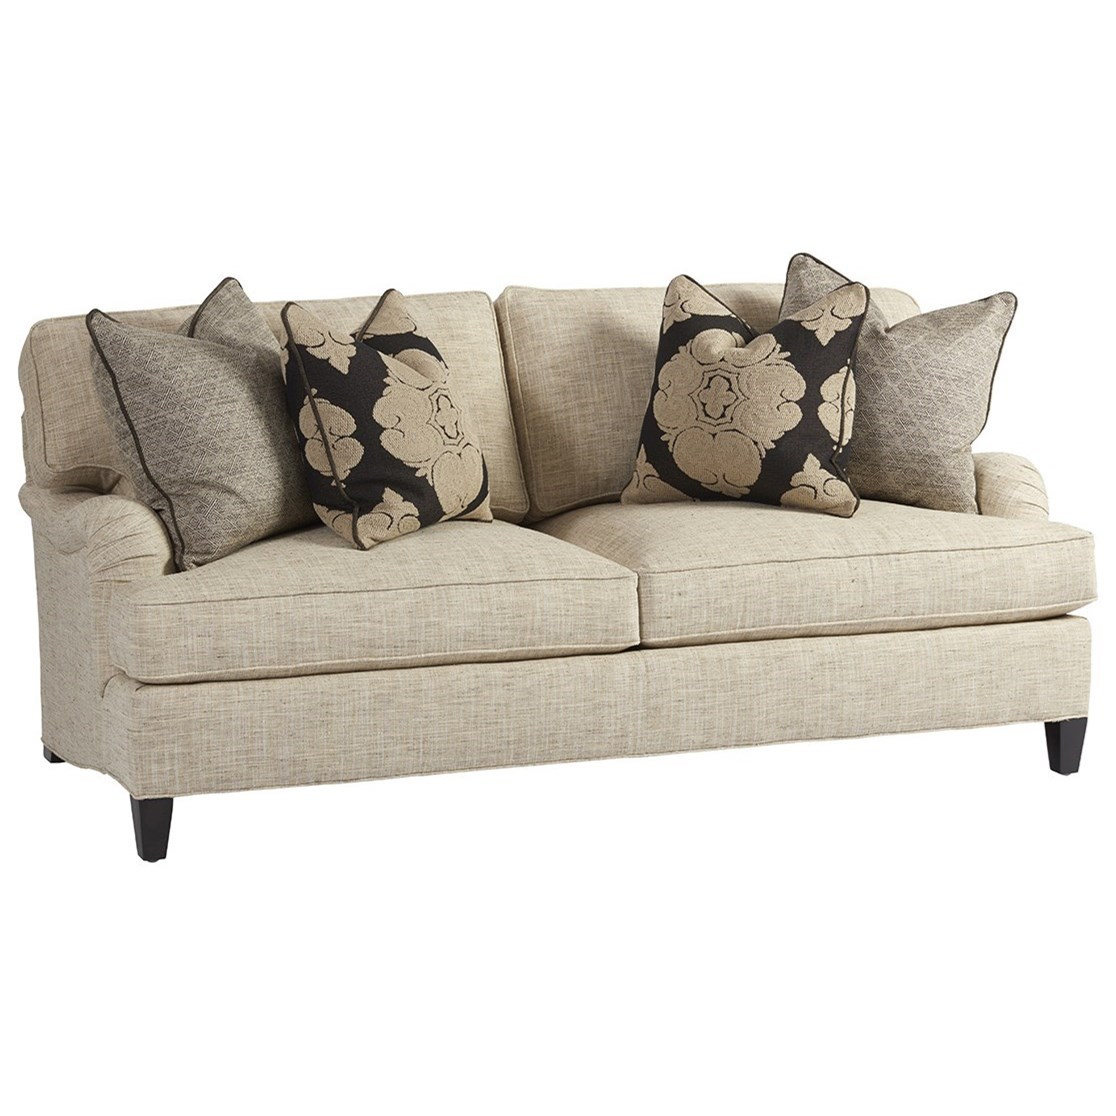 Barclay Butera Upholstery Grady Sofa by Barclay Butera at Baer's Furniture